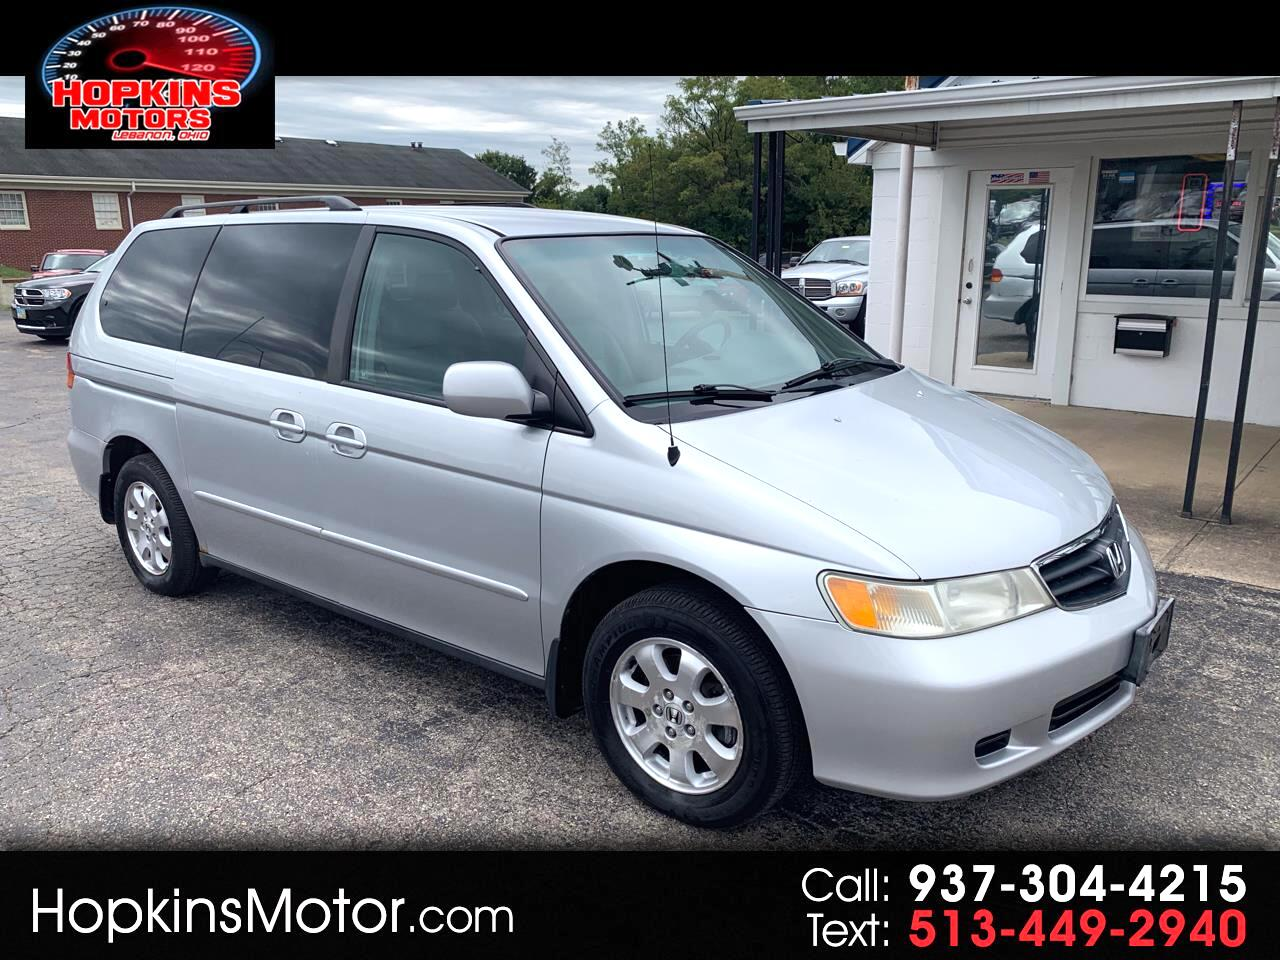 2004 Honda Odyssey 5dr EX-L RES w/DVD/Leather